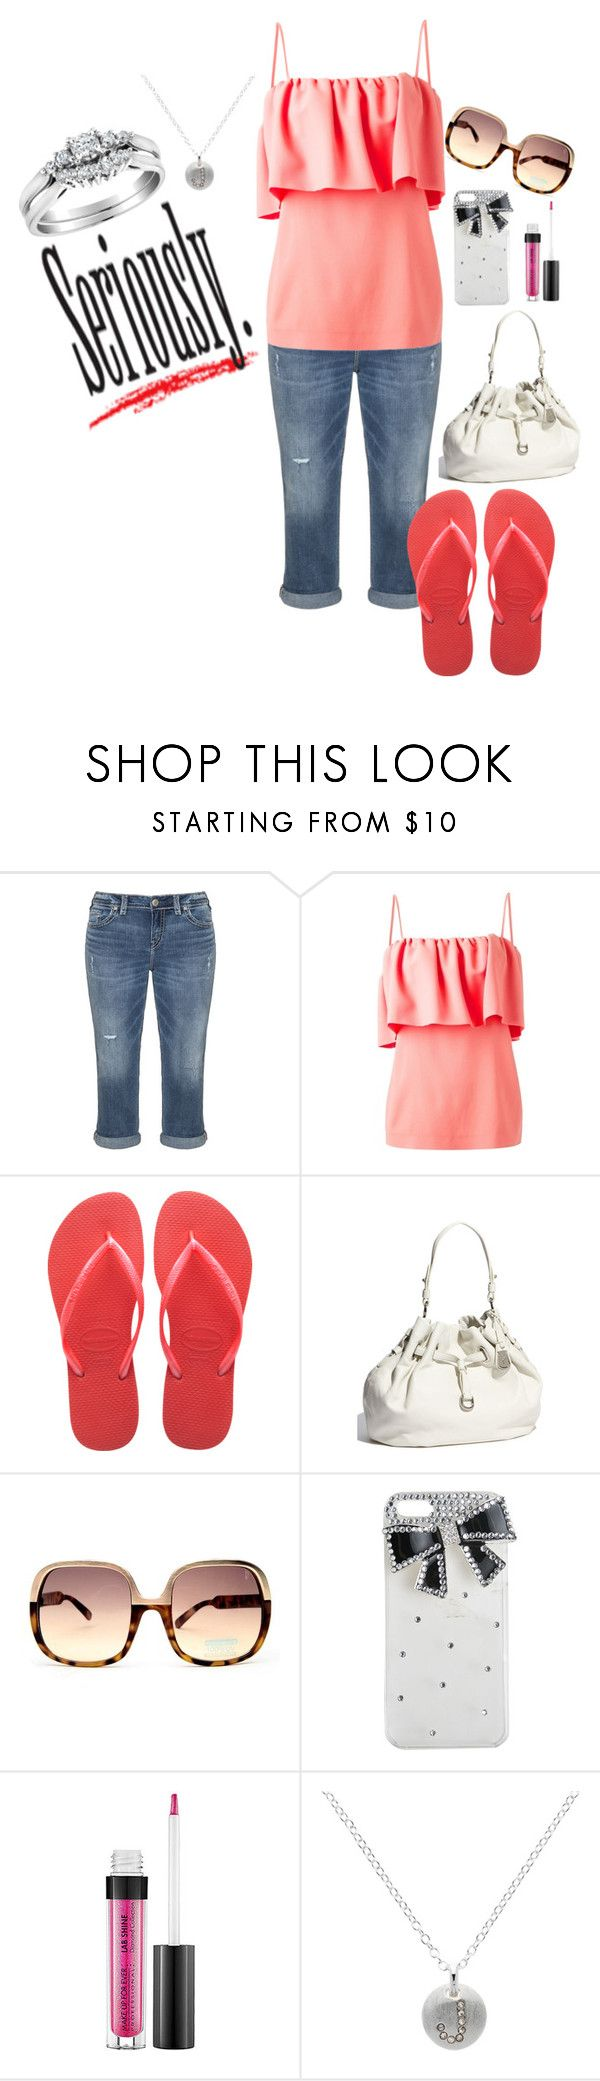 """""""Seriously."""" by not-your-southern-bell ❤ liked on Polyvore featuring Silver Jeans Co., MSGM, Havaianas, Cole Haan, Wet Seal, MAKE UP FOR EVER and Melissa Odabash"""